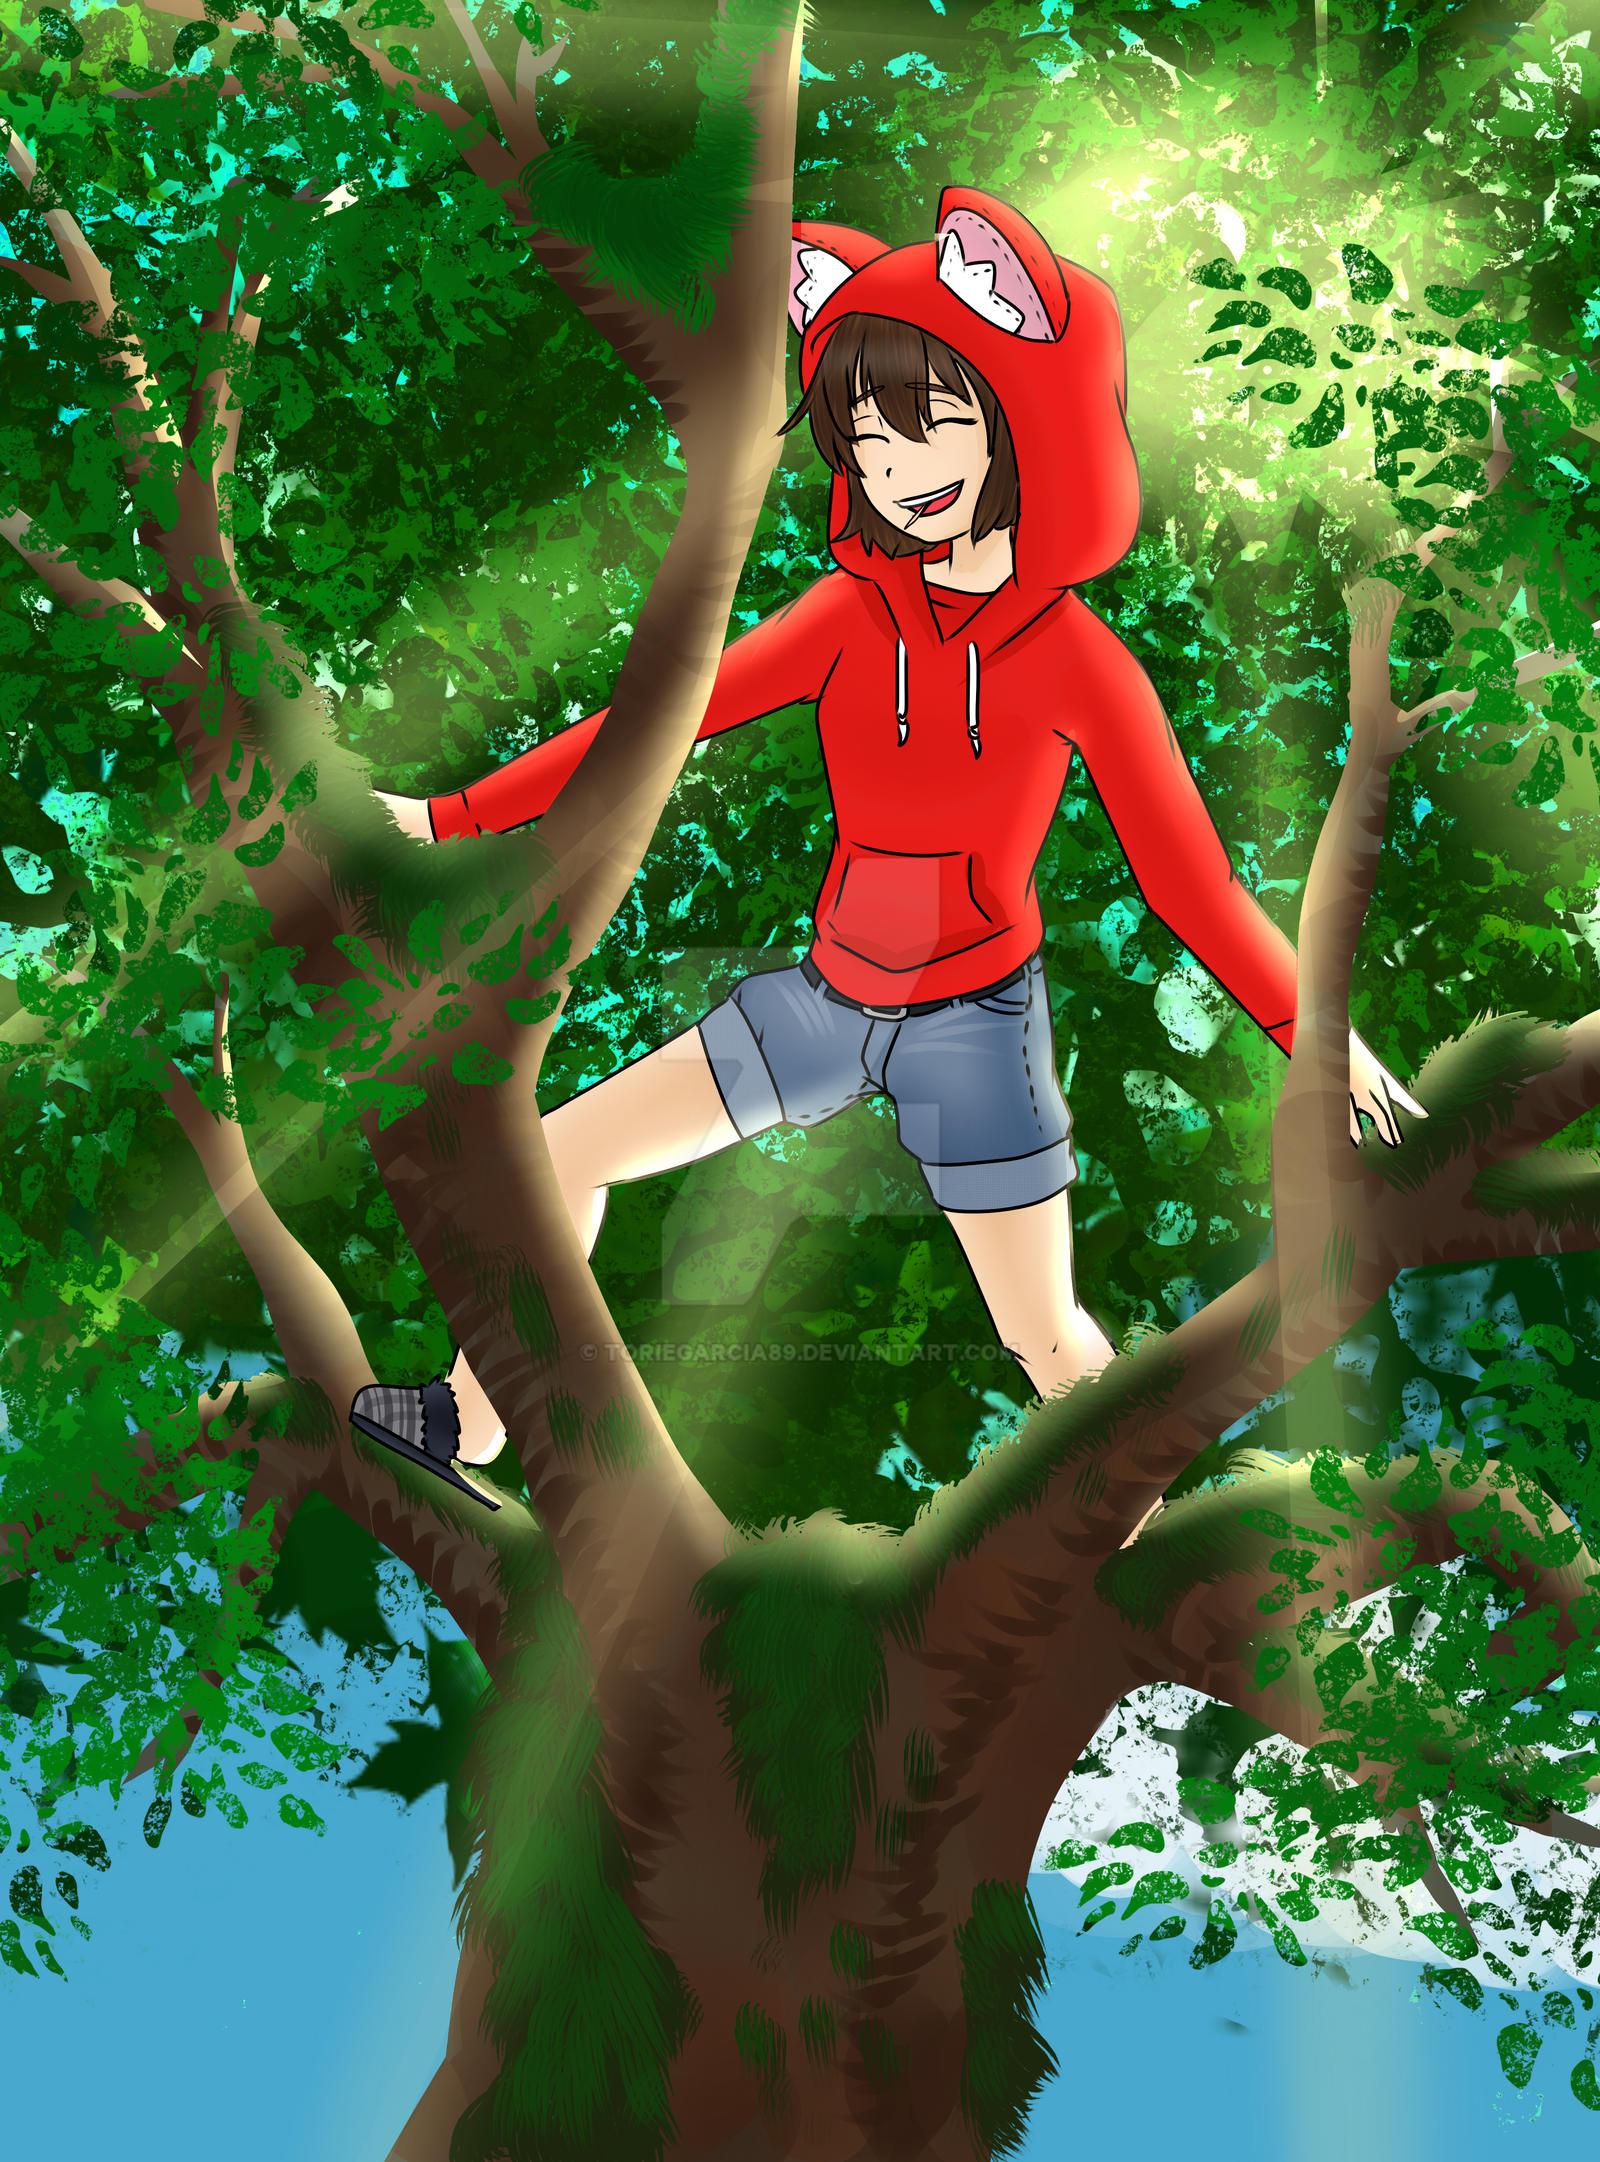 Tree Climber [Commission] by toriegarcia89